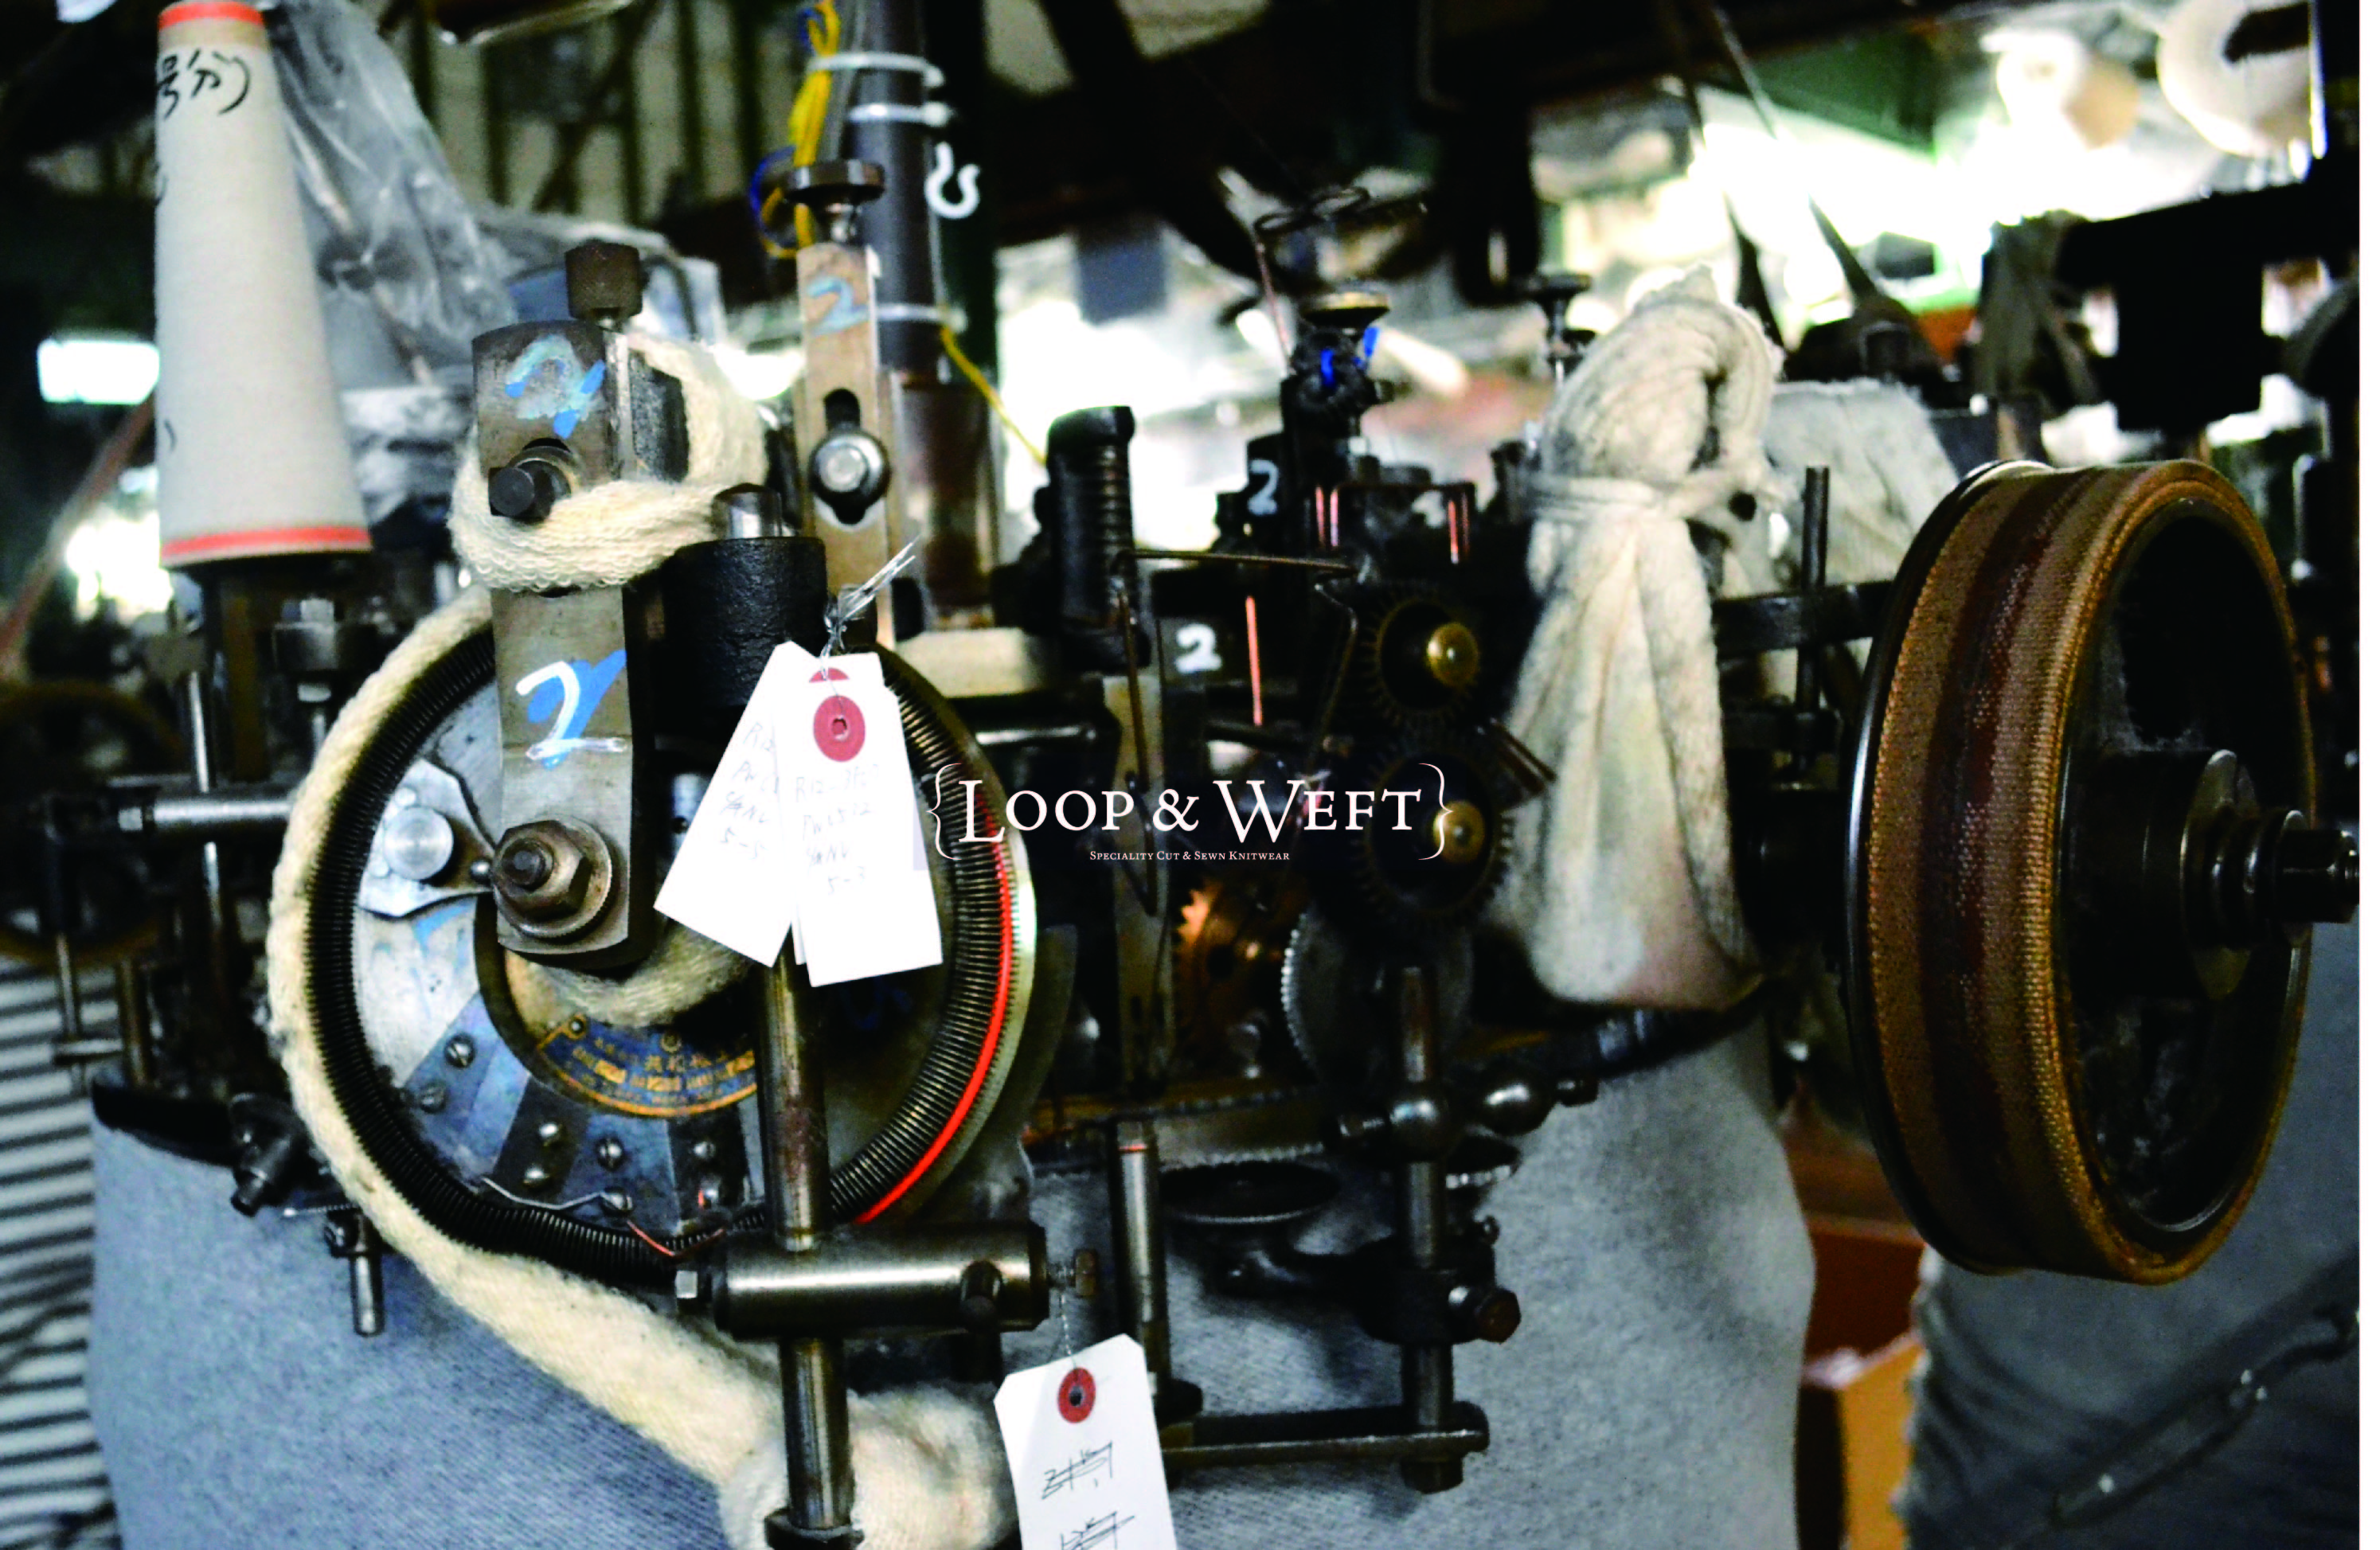 LOOP AND WEFT